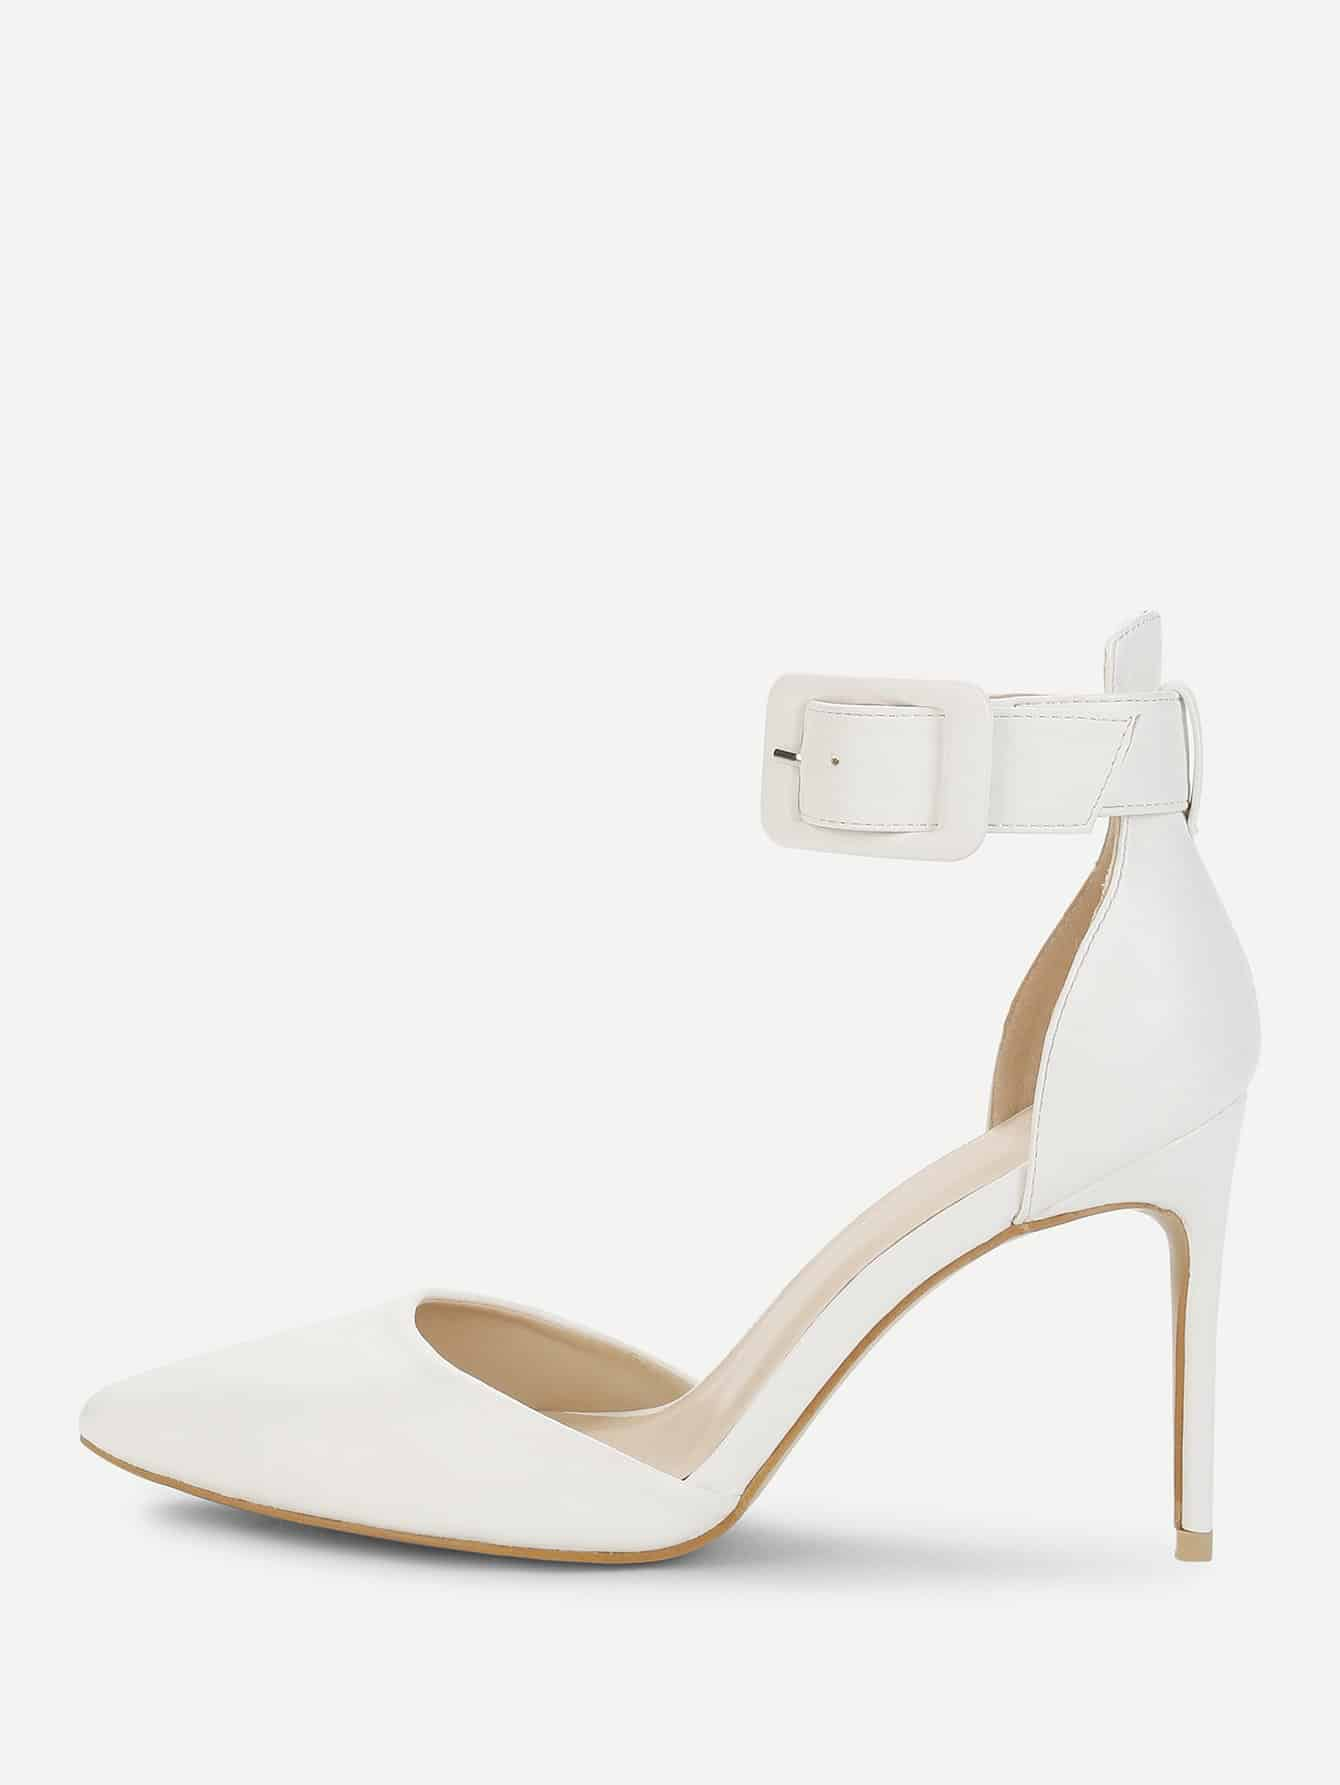 Ankle Cuff Pointed Toe Stiletto Heels цена 2017